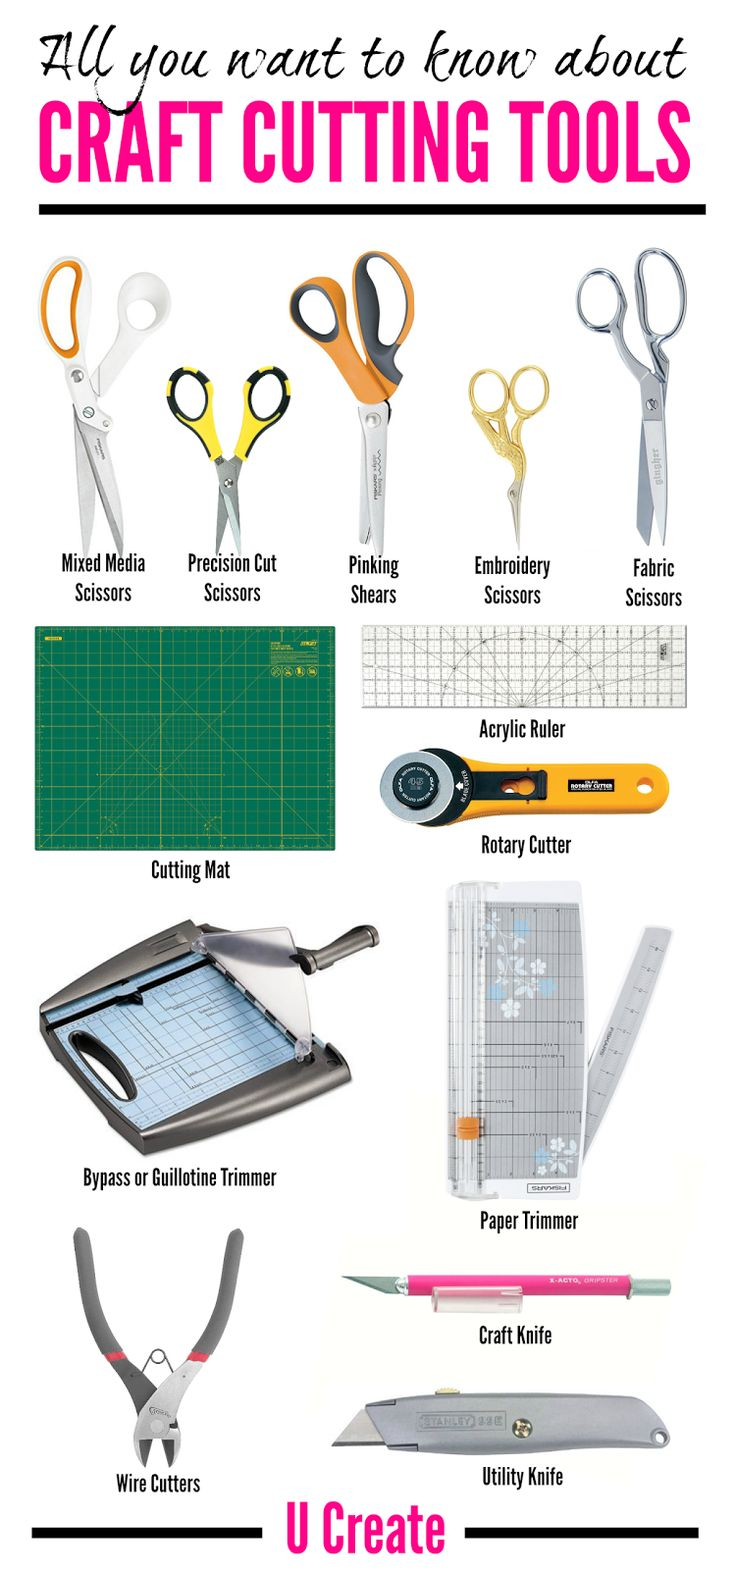 Cutting Tools for Crafters Guide - U Create